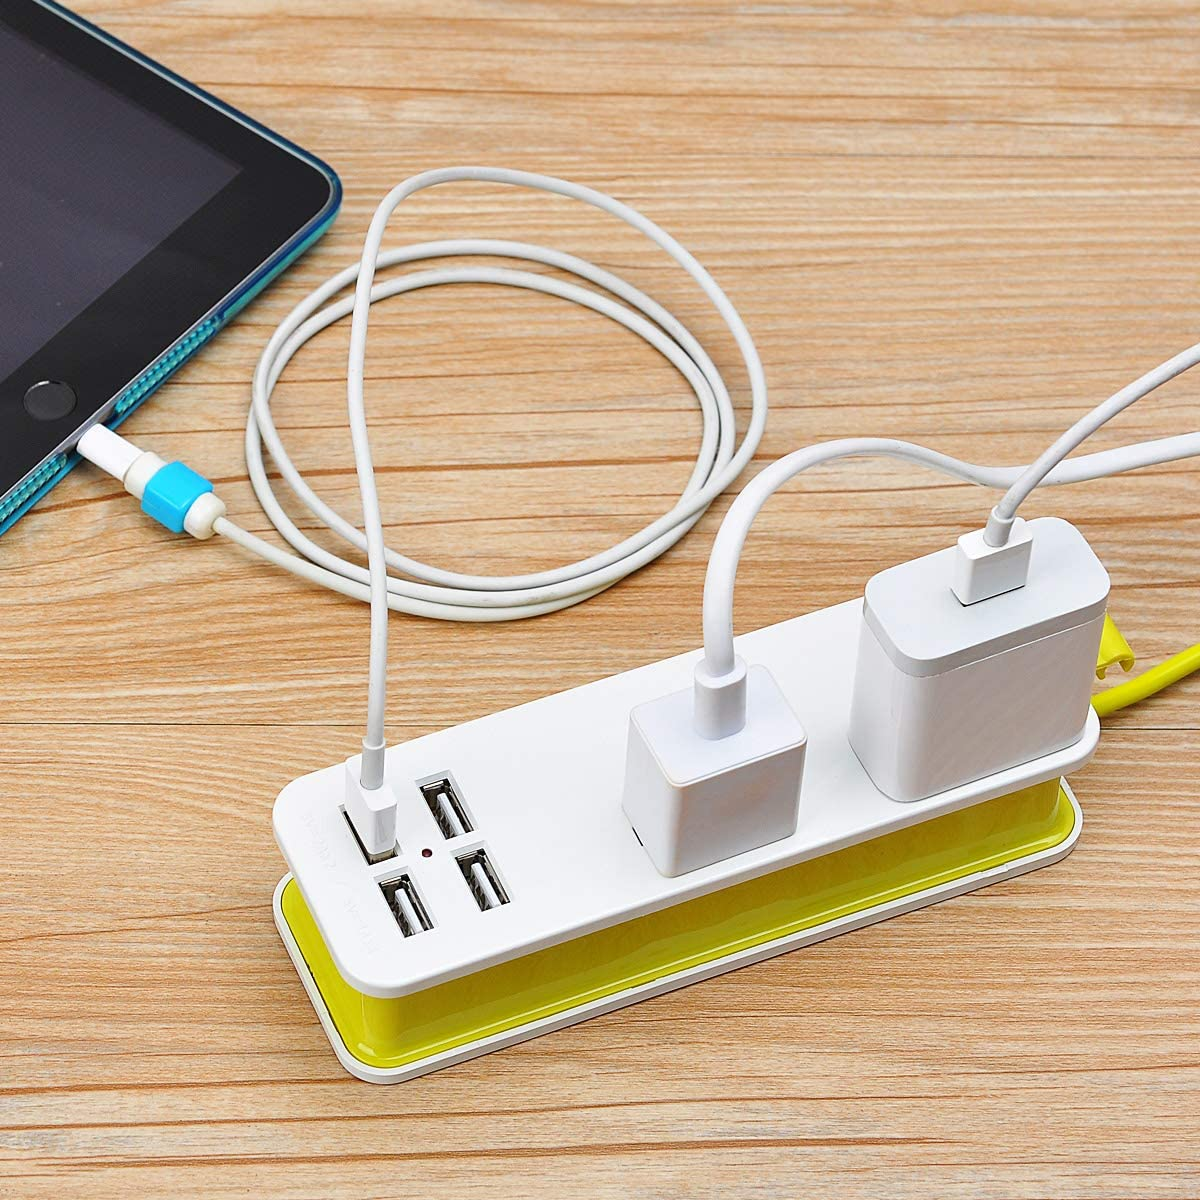 Universal Portable Travel Power Strip Surge Protector - 3 Way Outlets 4 USB Ports 1.6m Extension cord for Office/Home/Hotels/Nightstand